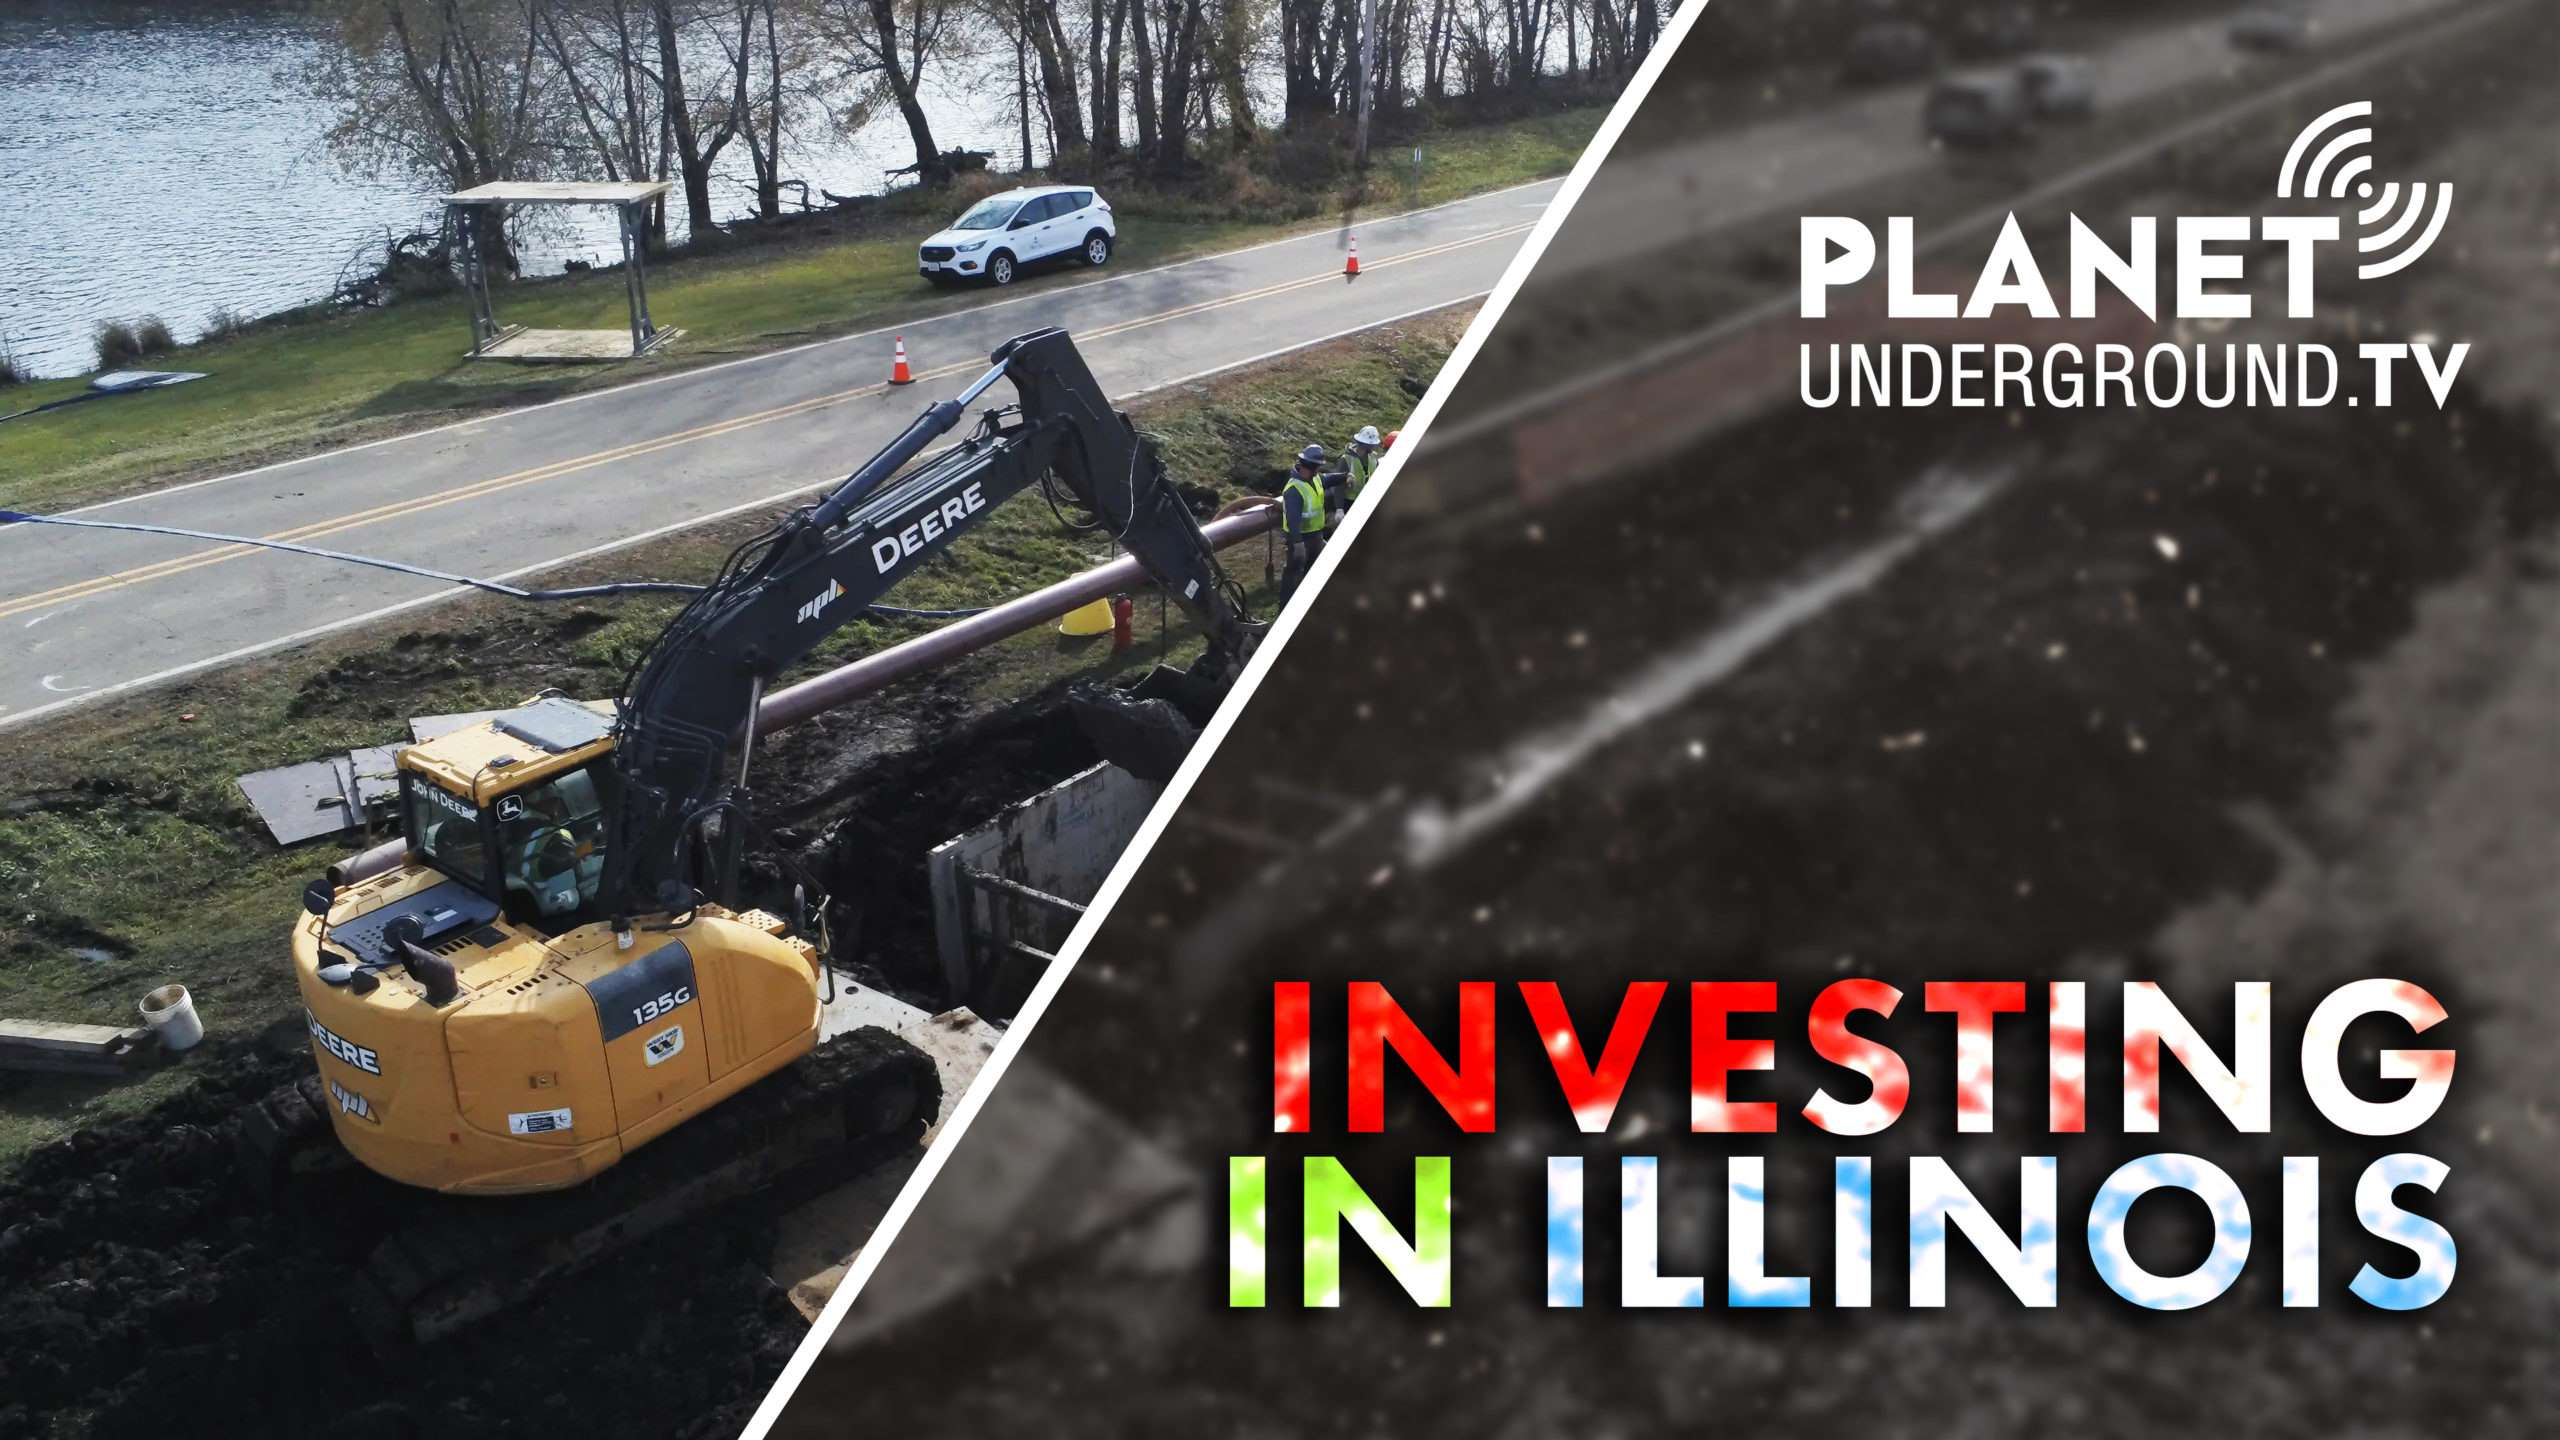 Investing in Illinois: A PUTV Short